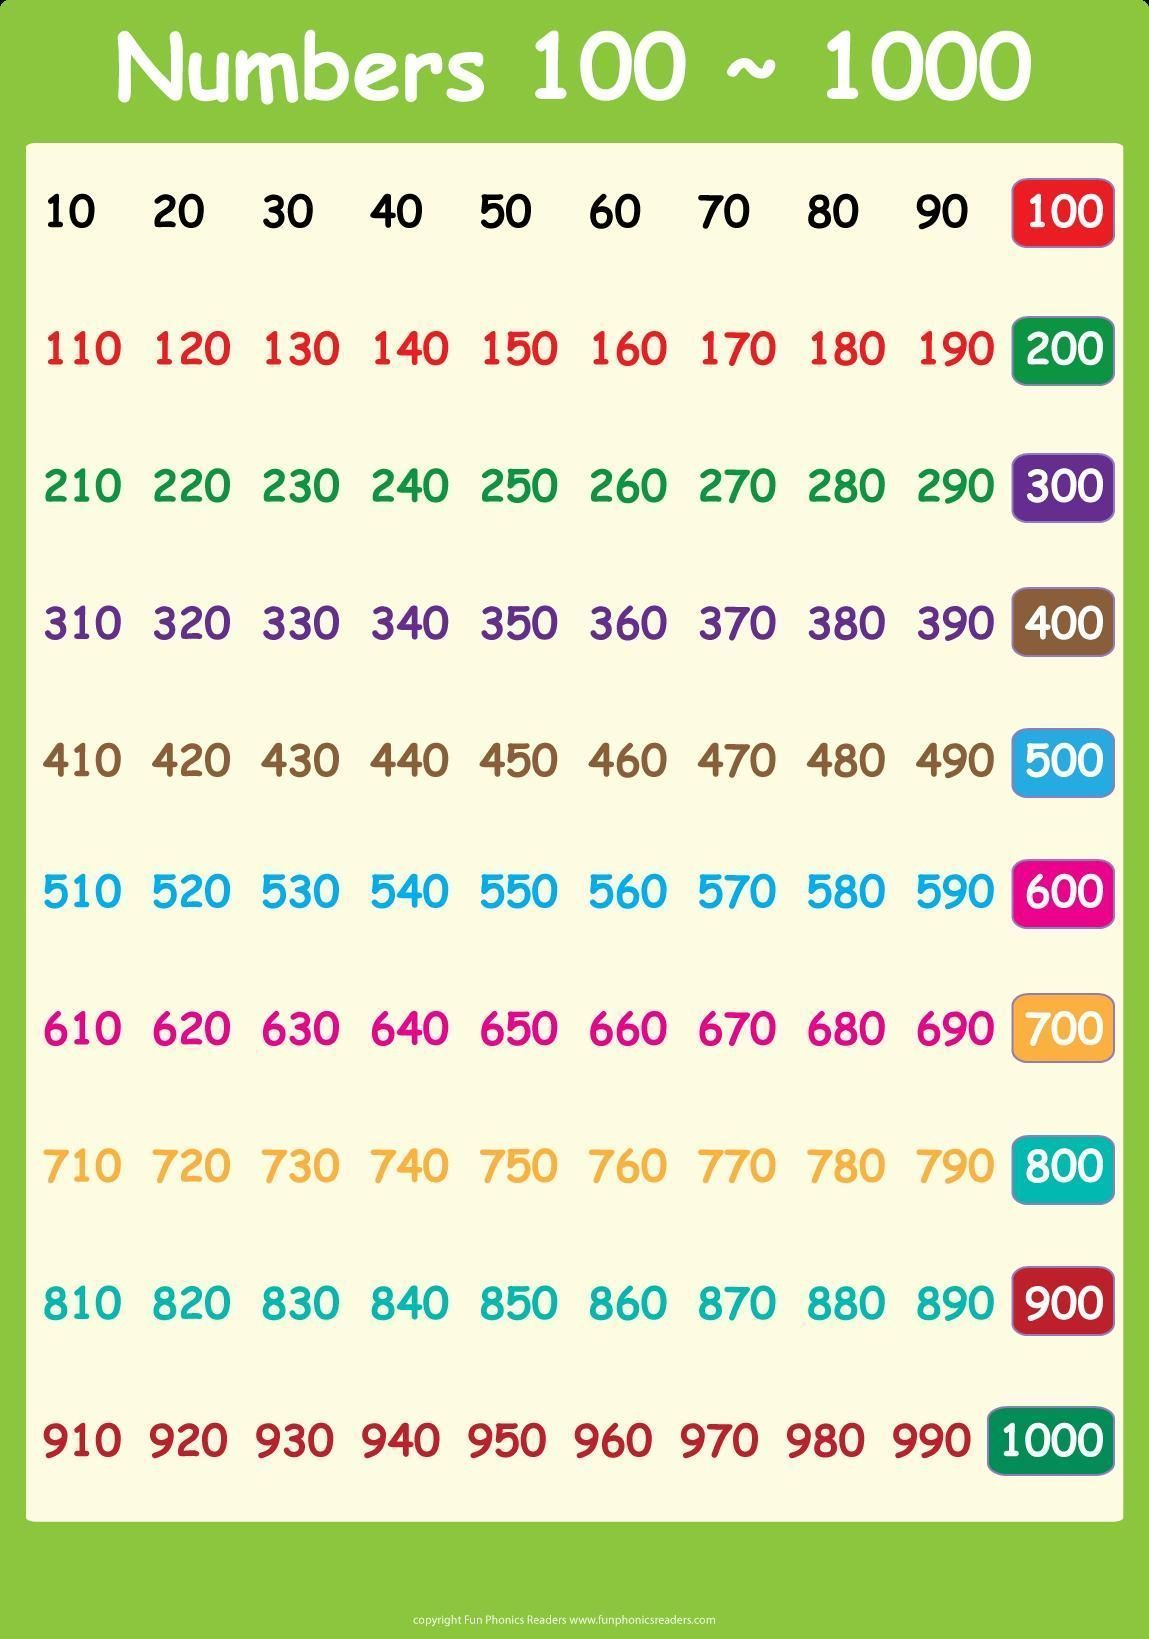 Fill In The Missing Numbers 1 50 Counting Worksheets For Kindergarten Counting Worksheets Writing Numbers